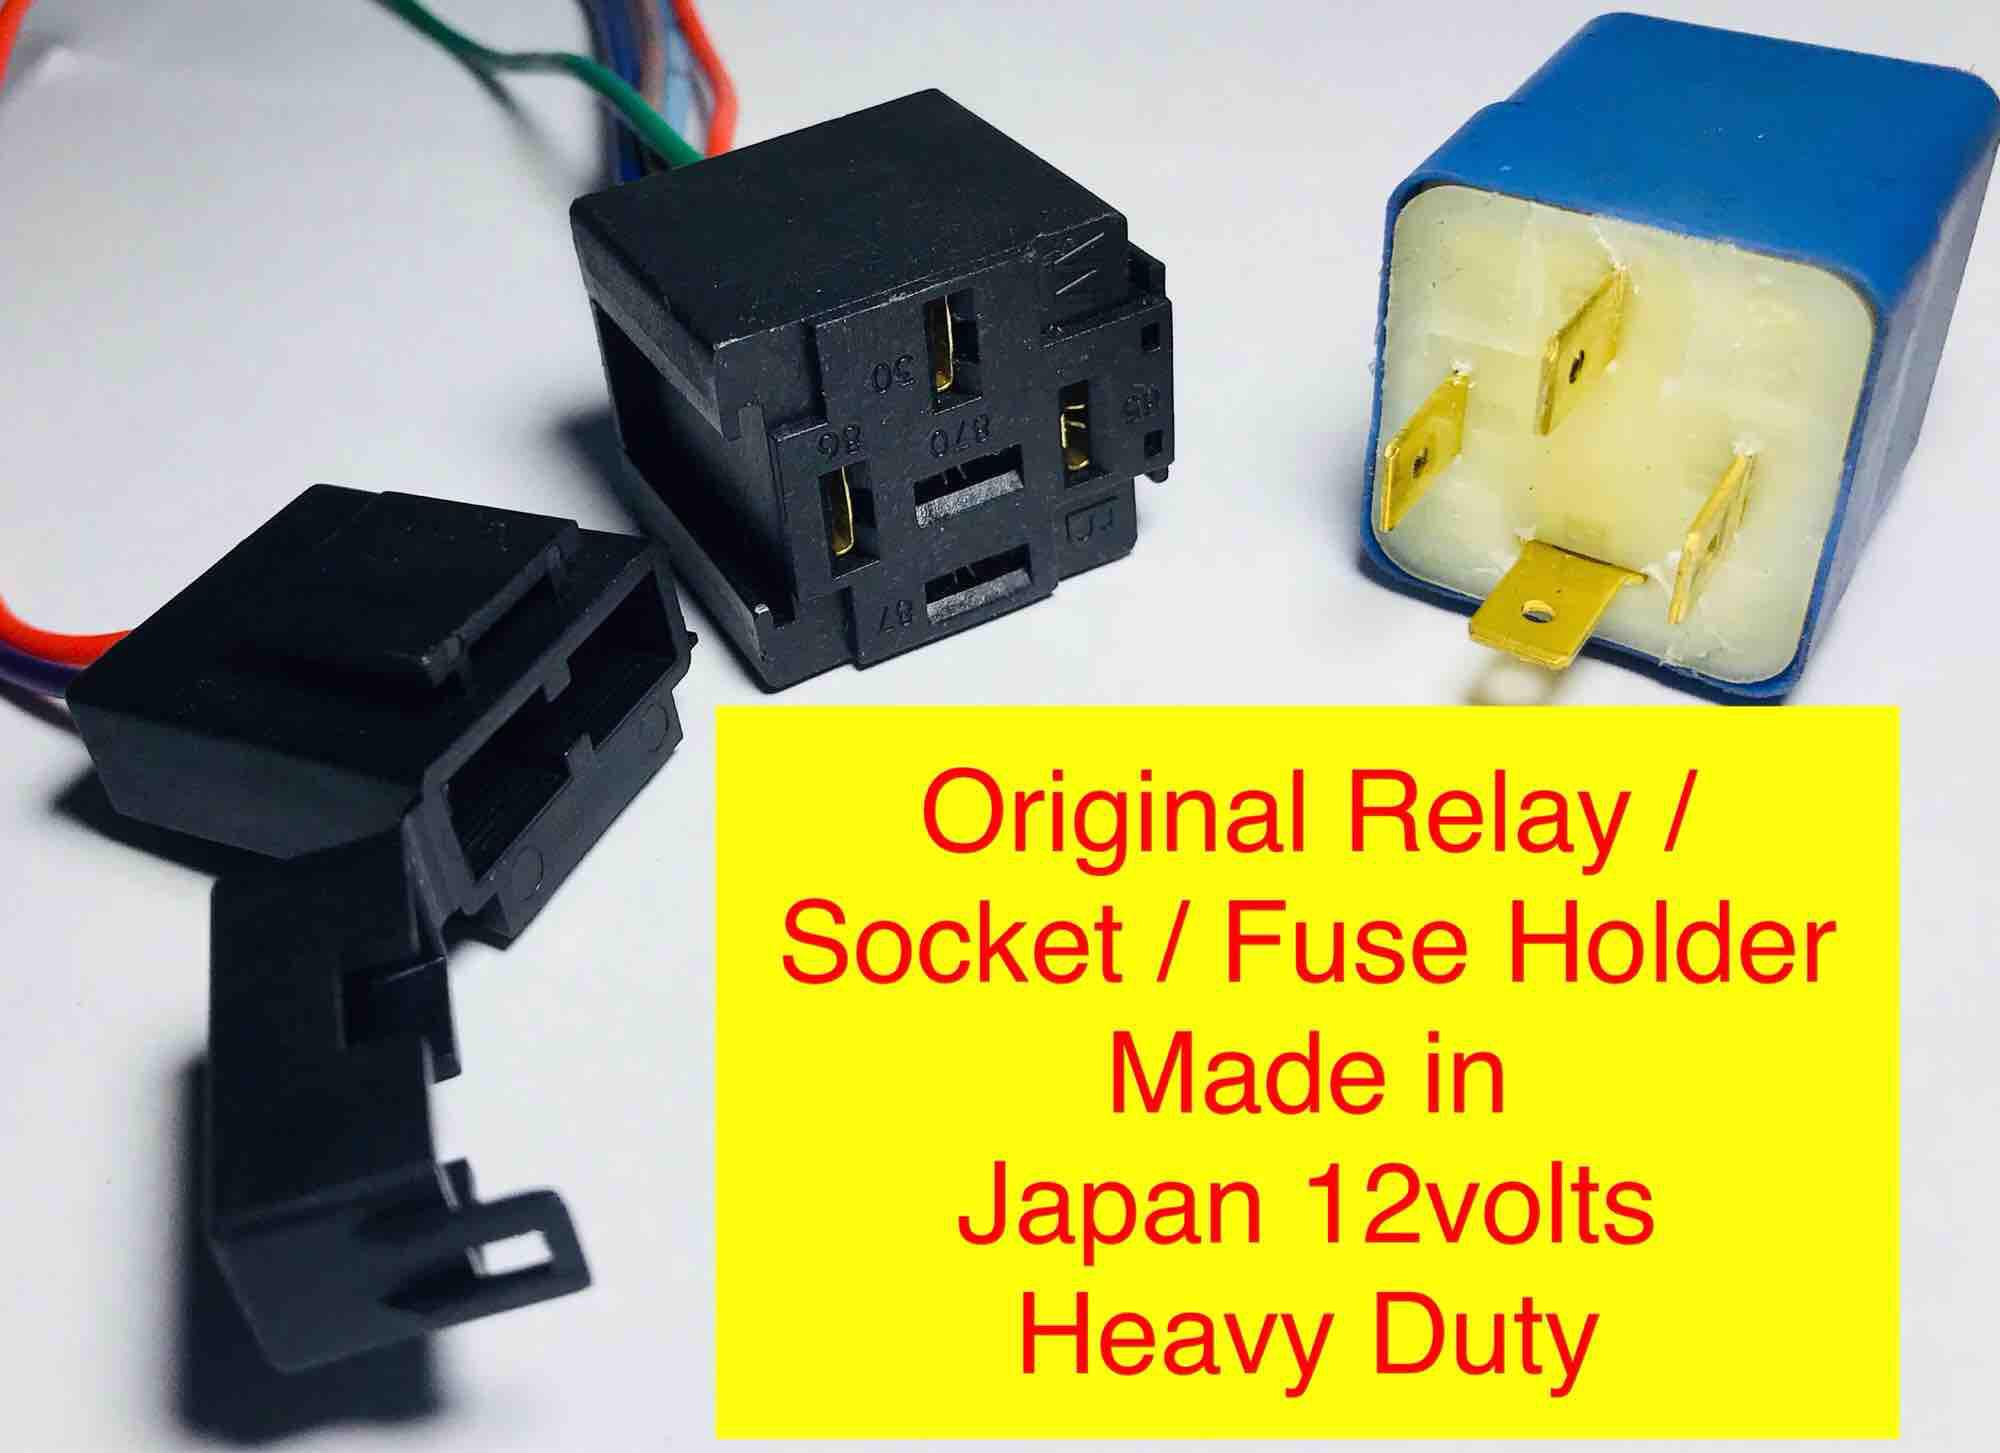 Car Relays For Sale Automotive Online Brands Prices Wiring A Changeover Relay Auto 12v Socket Fuse Holder Like Bosch Original Universal